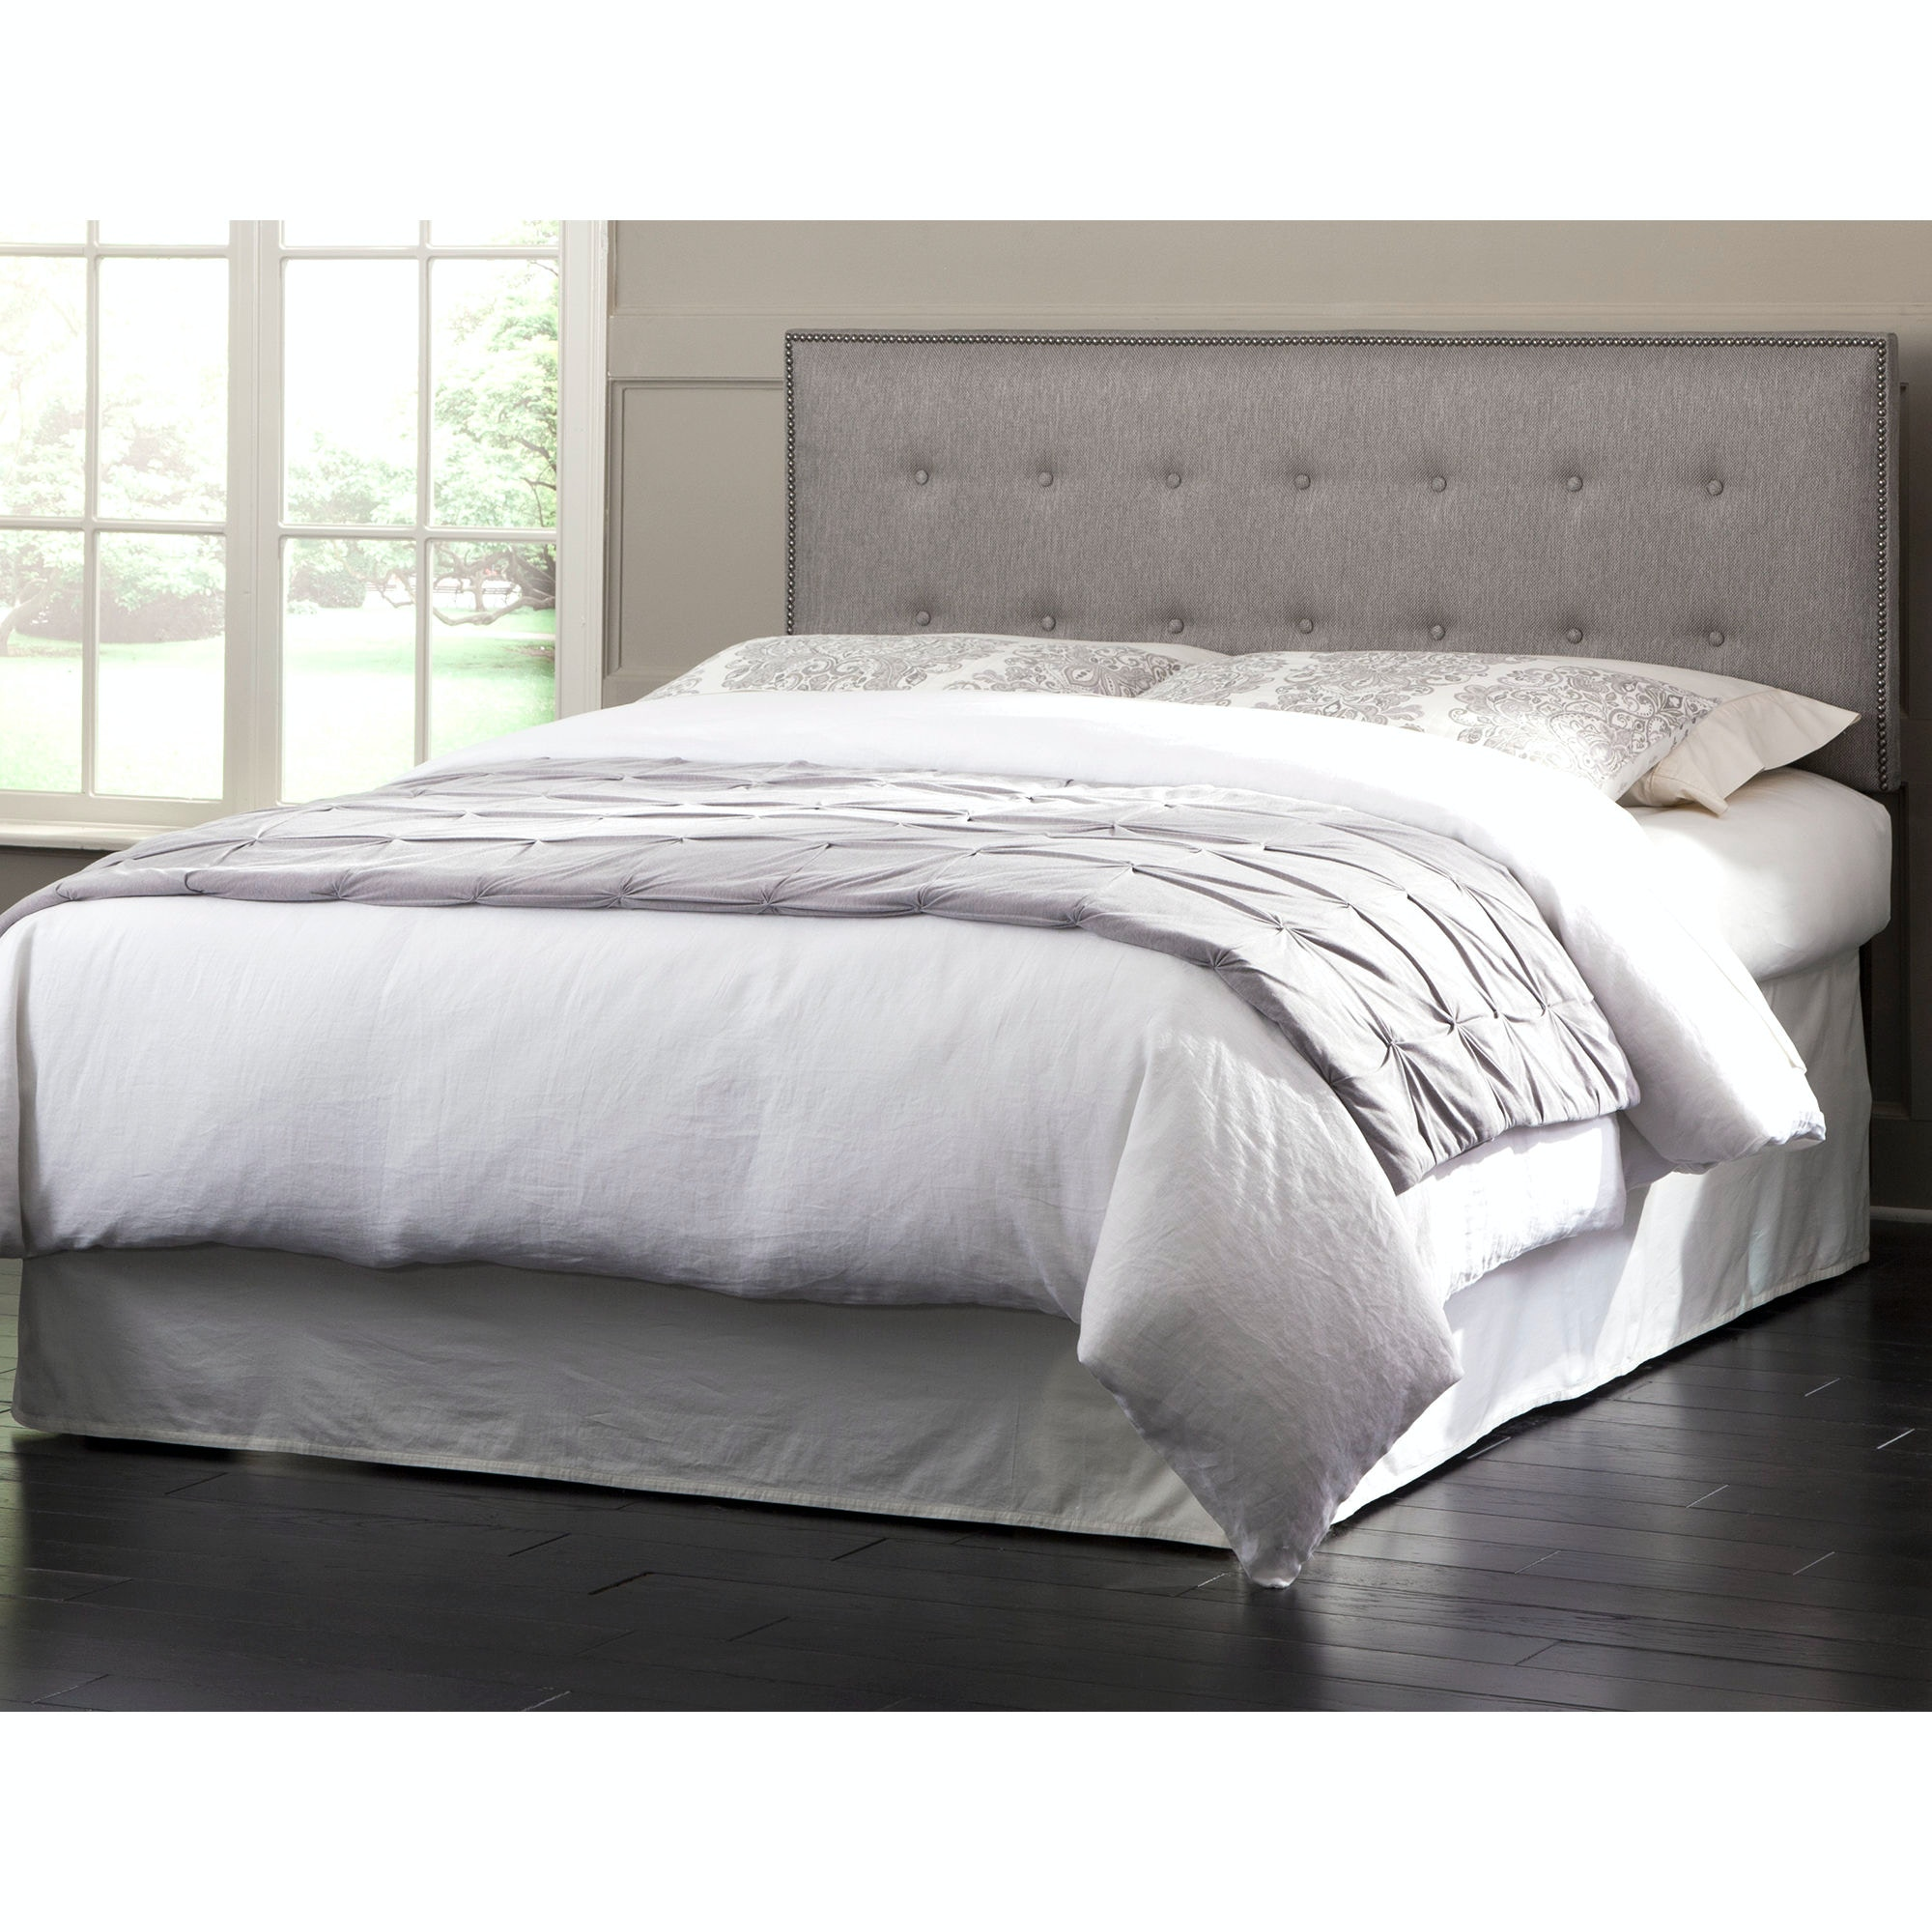 Fashion Bed Group Bedroom Easley Upholstered Headboard Panel with Solid Wood Adjustable Frame